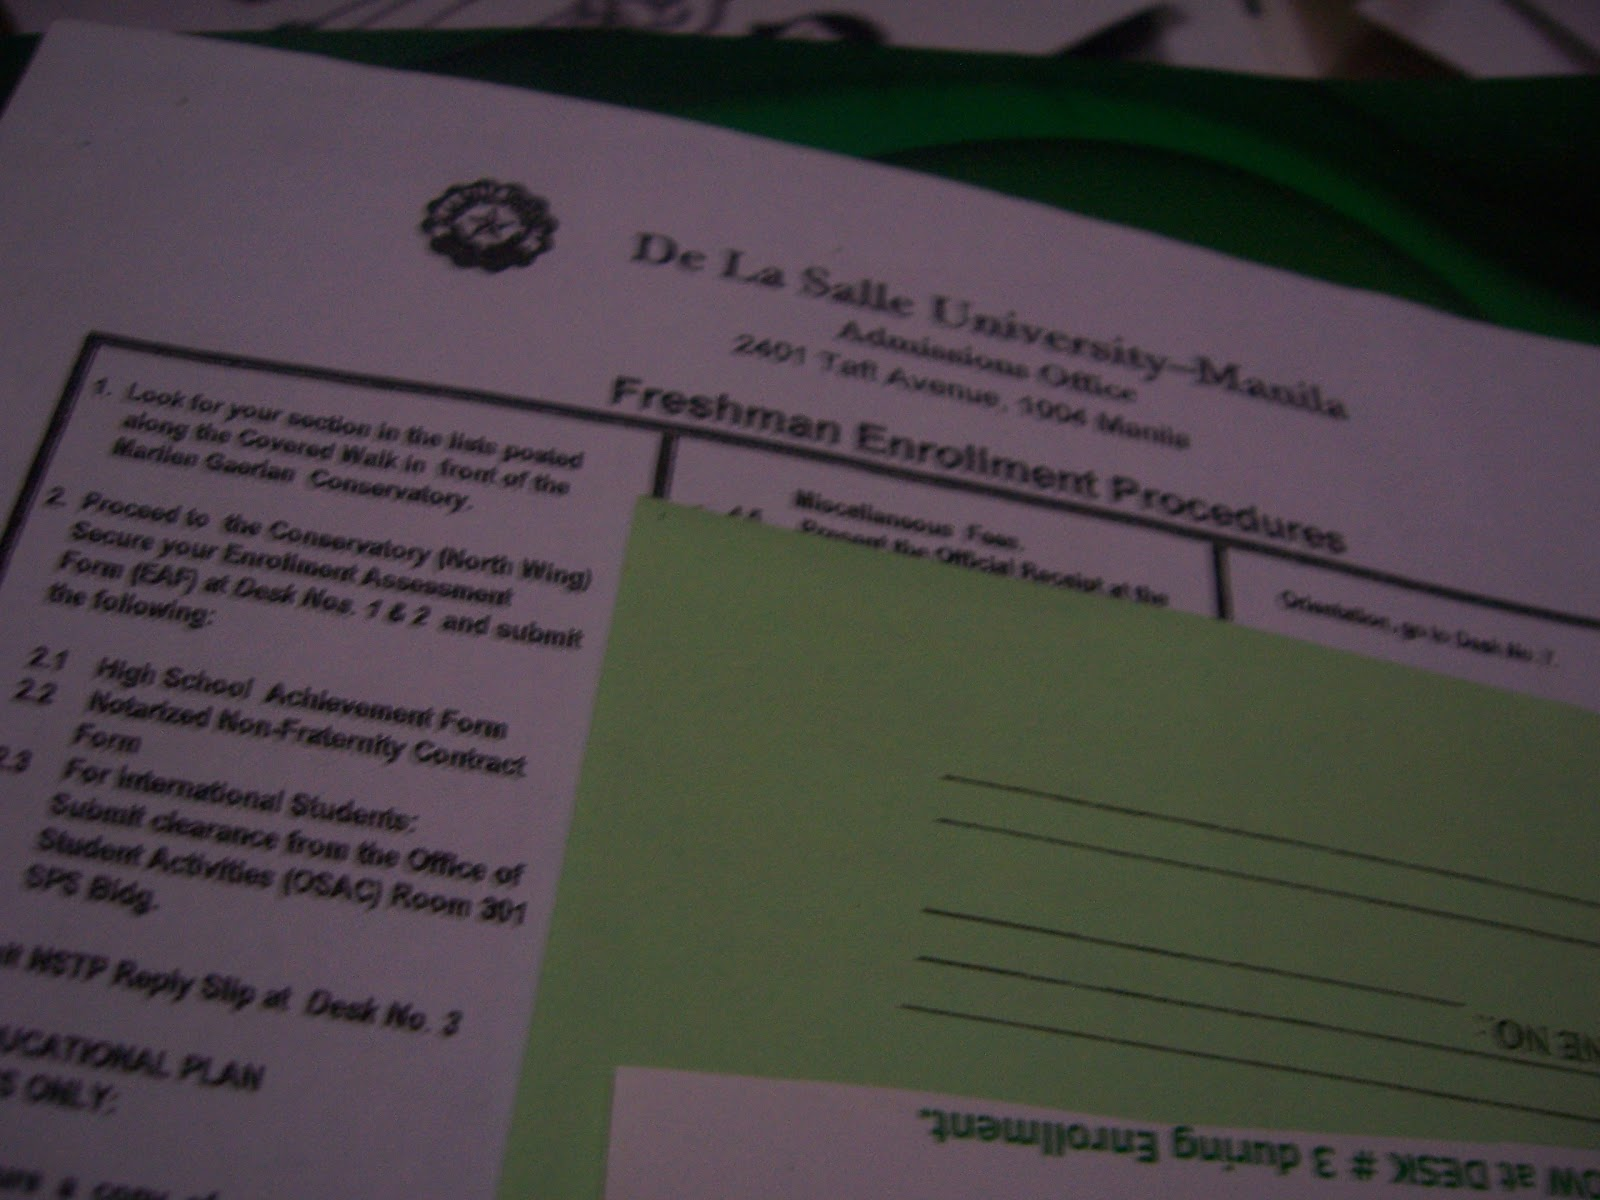 The rest of my DLSU enrollment pack, including a step-by-step guide to enrollment. This went to the trash.